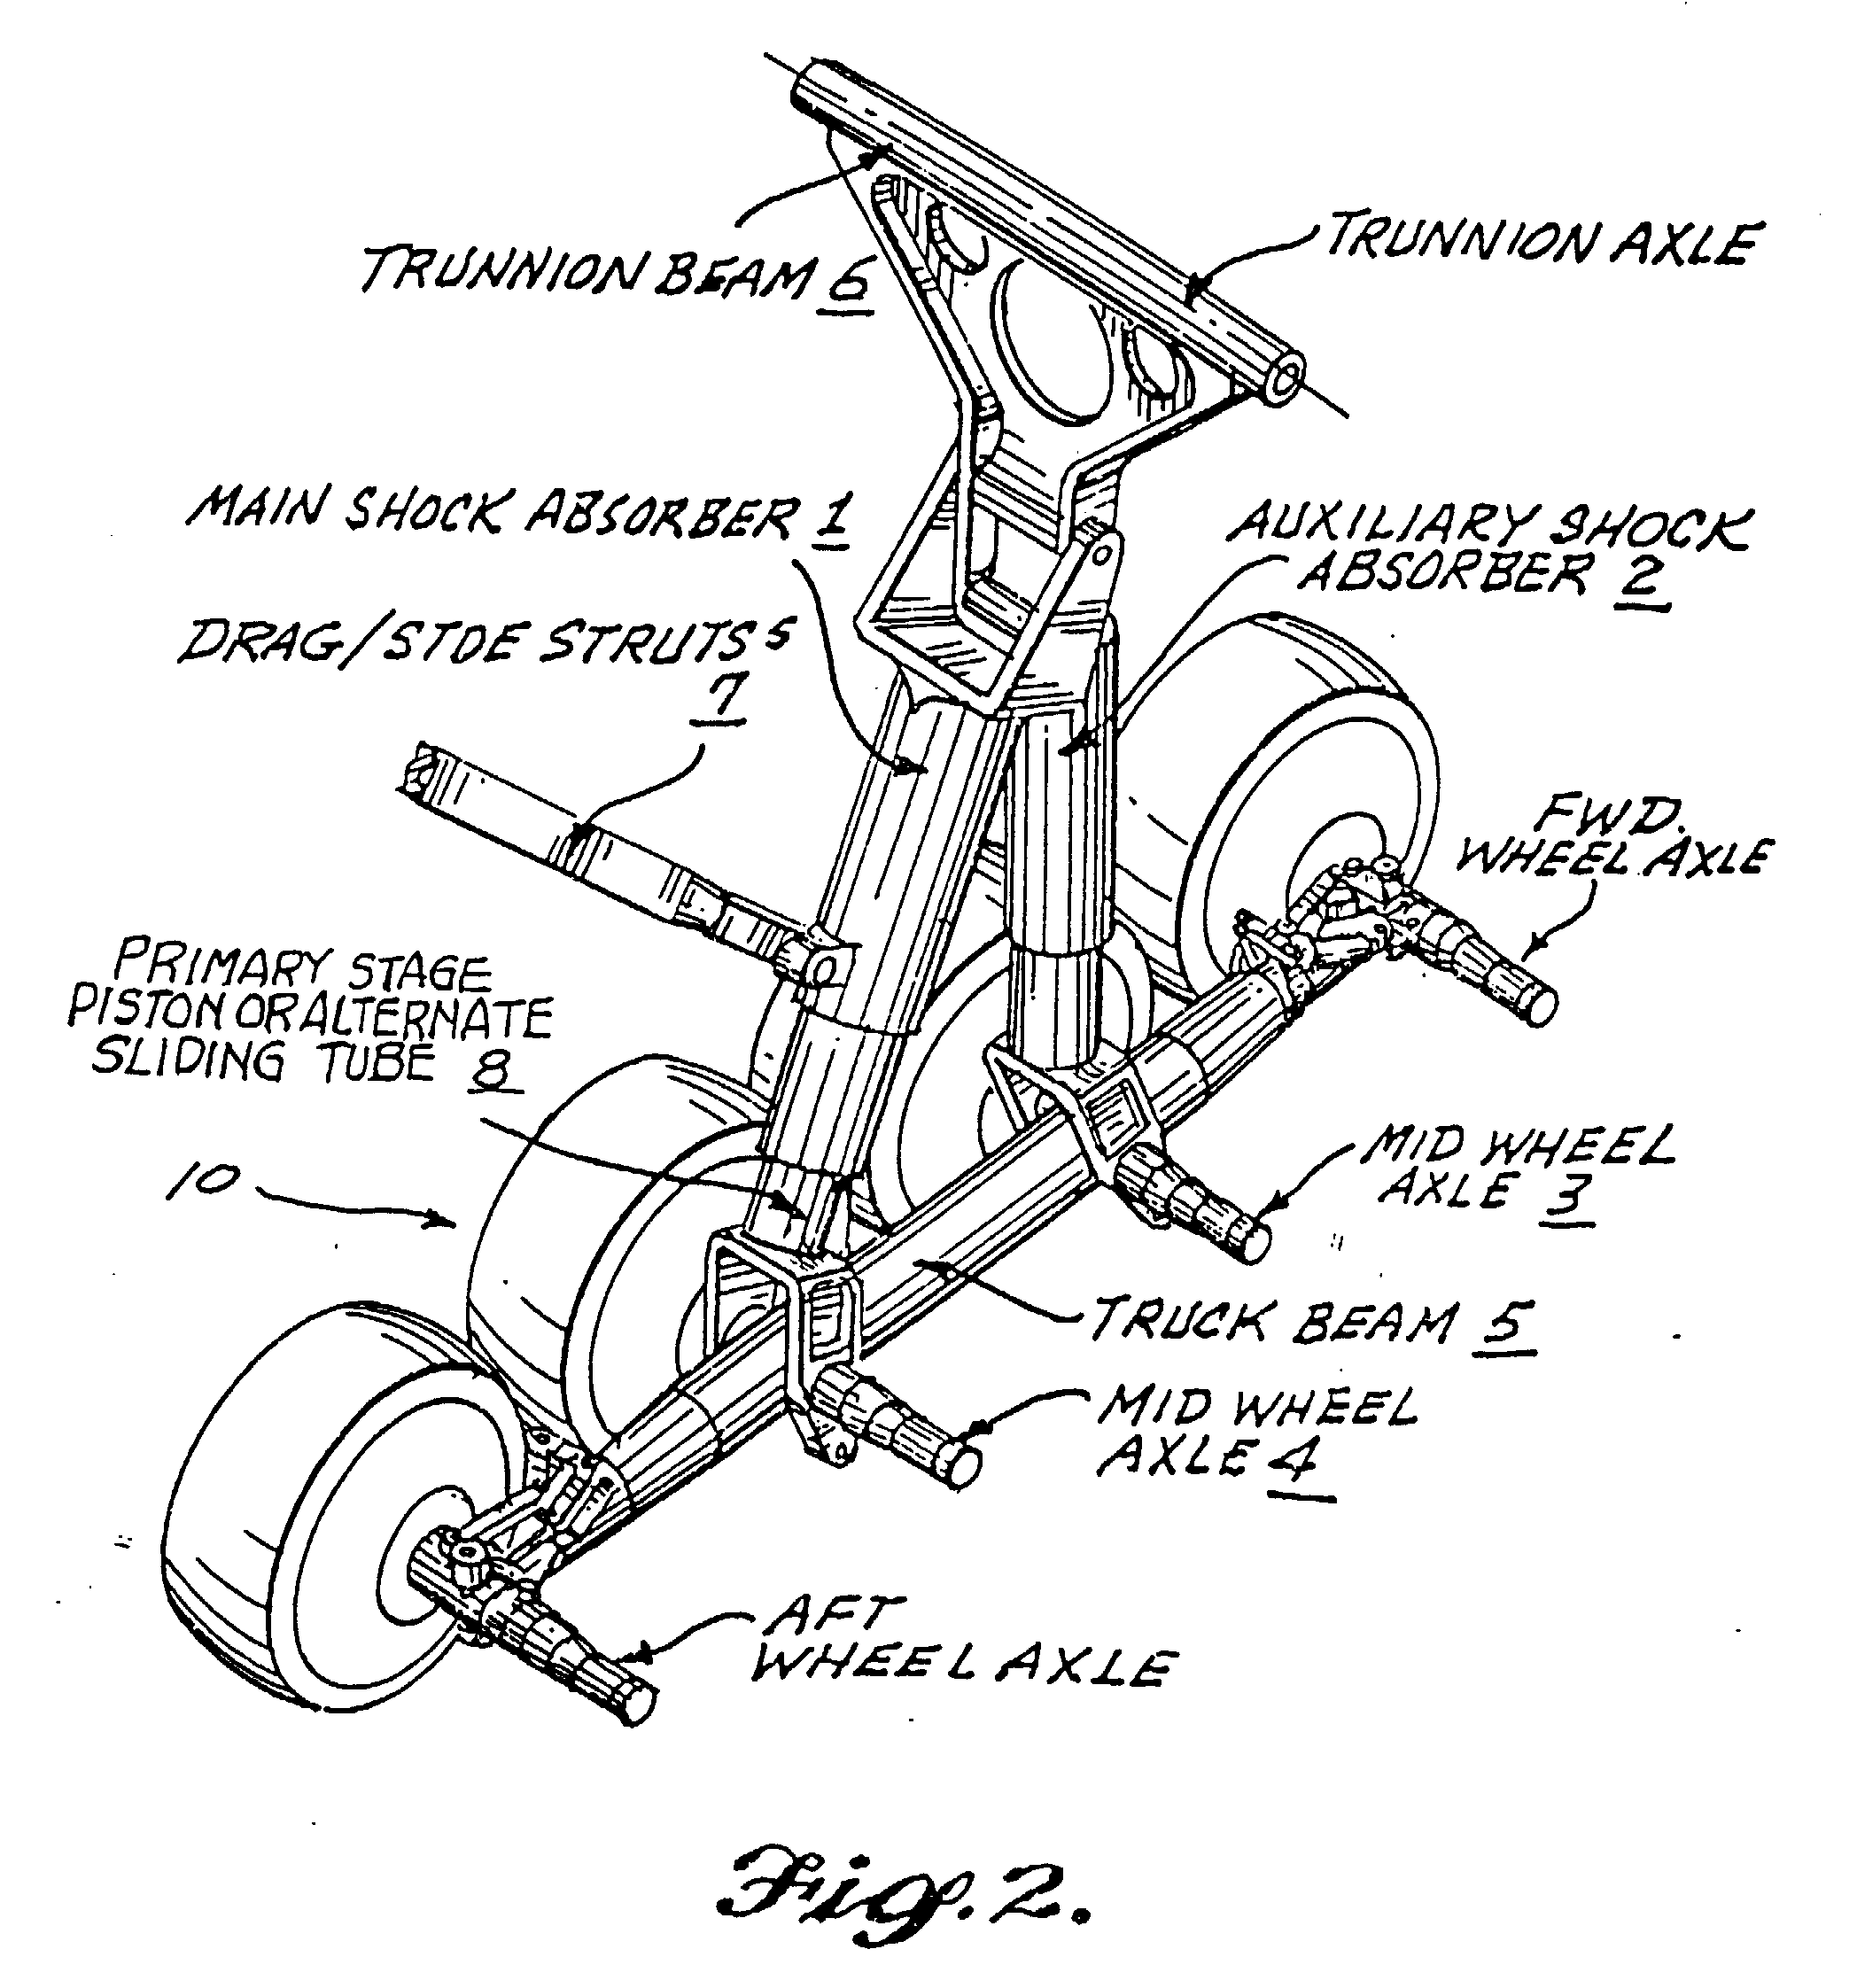 Shock Diagram Undercarriage 27 Wiring Images Jeep Cj Suspension Parts Years 197686 Including Pivot Eye Bushings Patent Ep0865986a2 Very Large Aircraft Landing Gear Having Eight